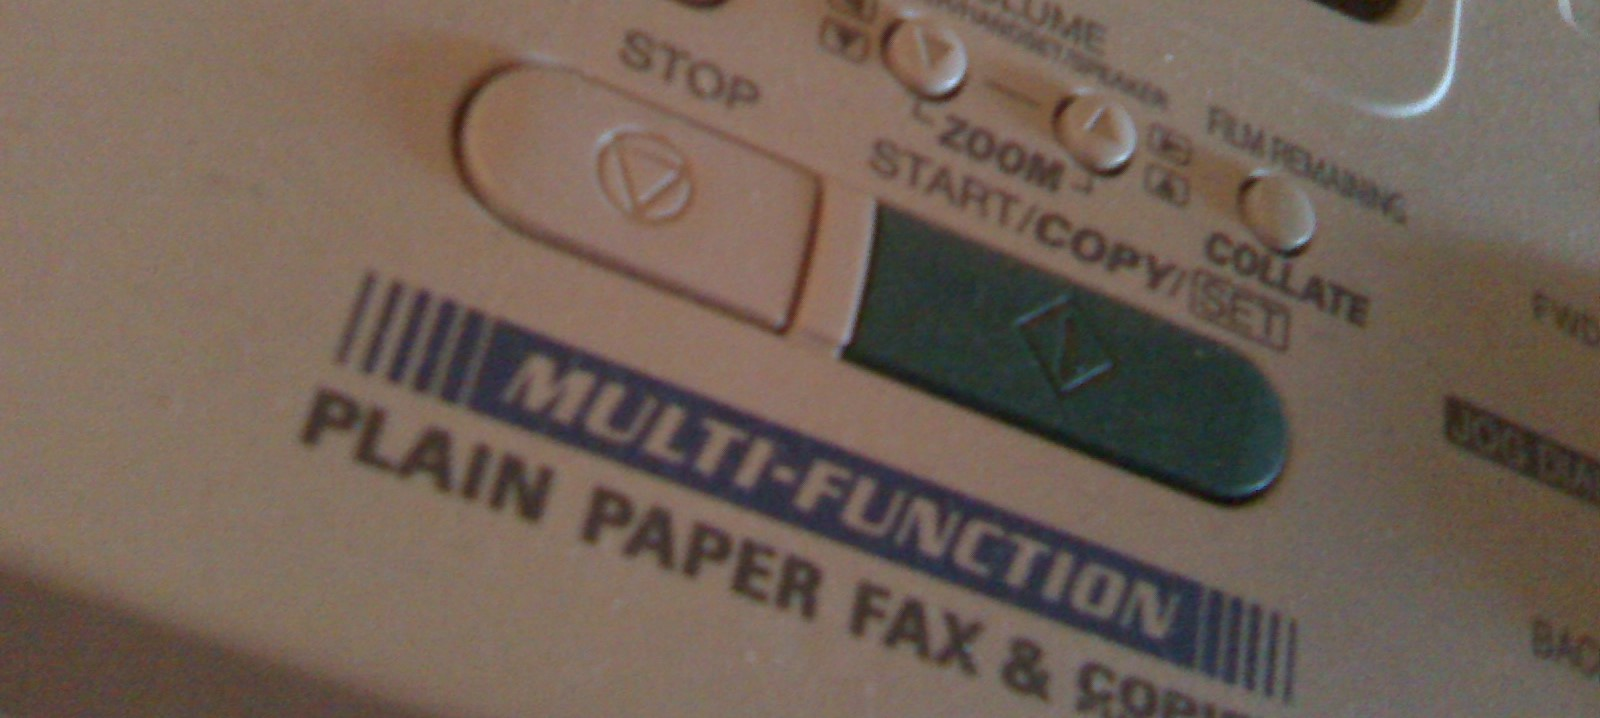 boring fax machine. Photo credit: Becky McCray, 2009, flickr, creative commons licence